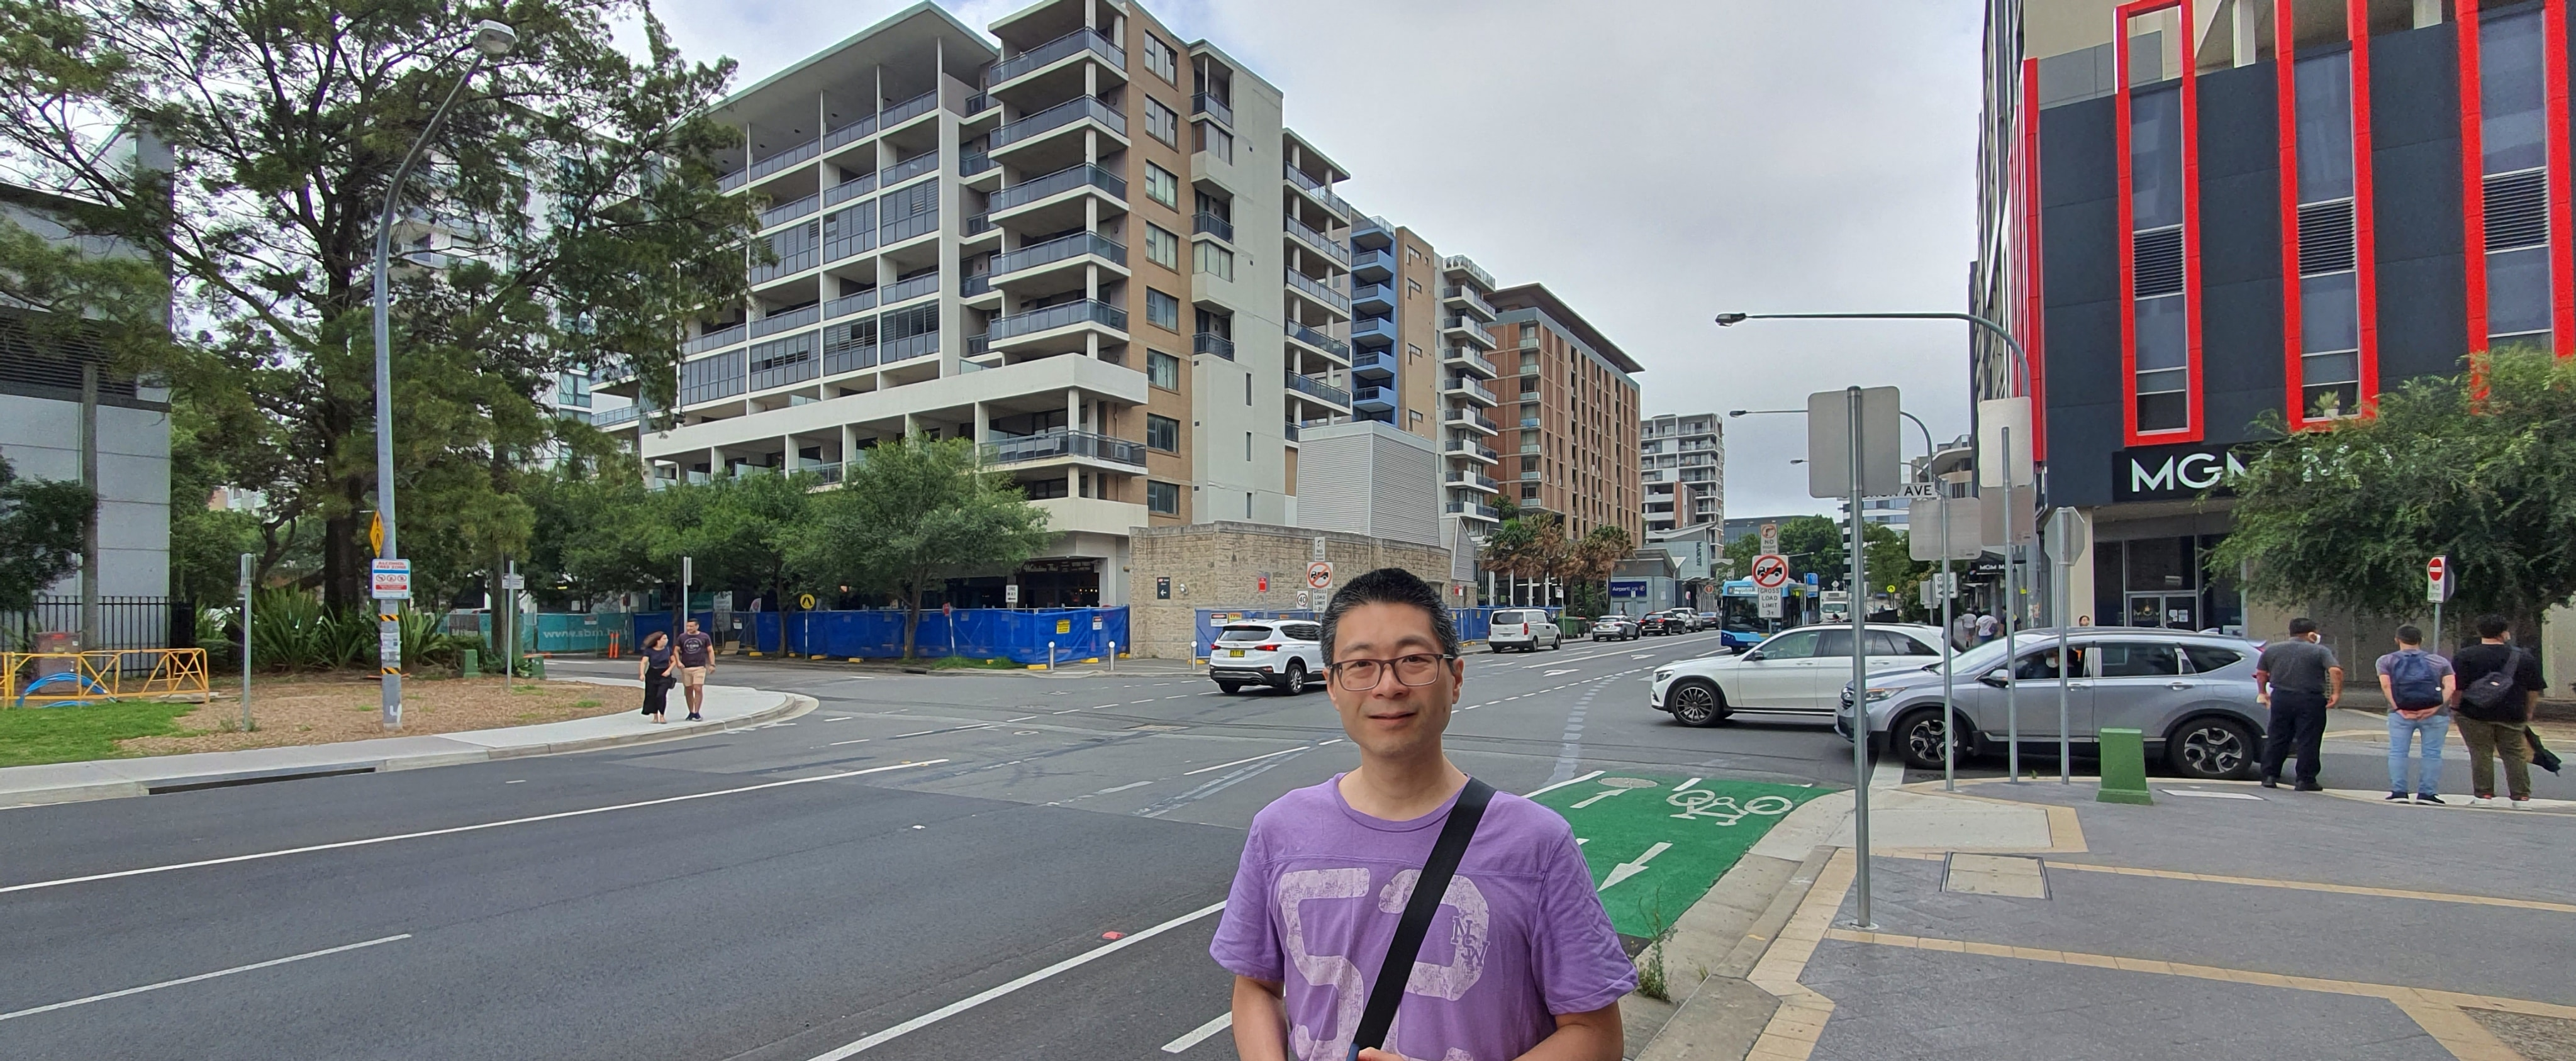 Alex Chan in front of the Mascot Towers building.